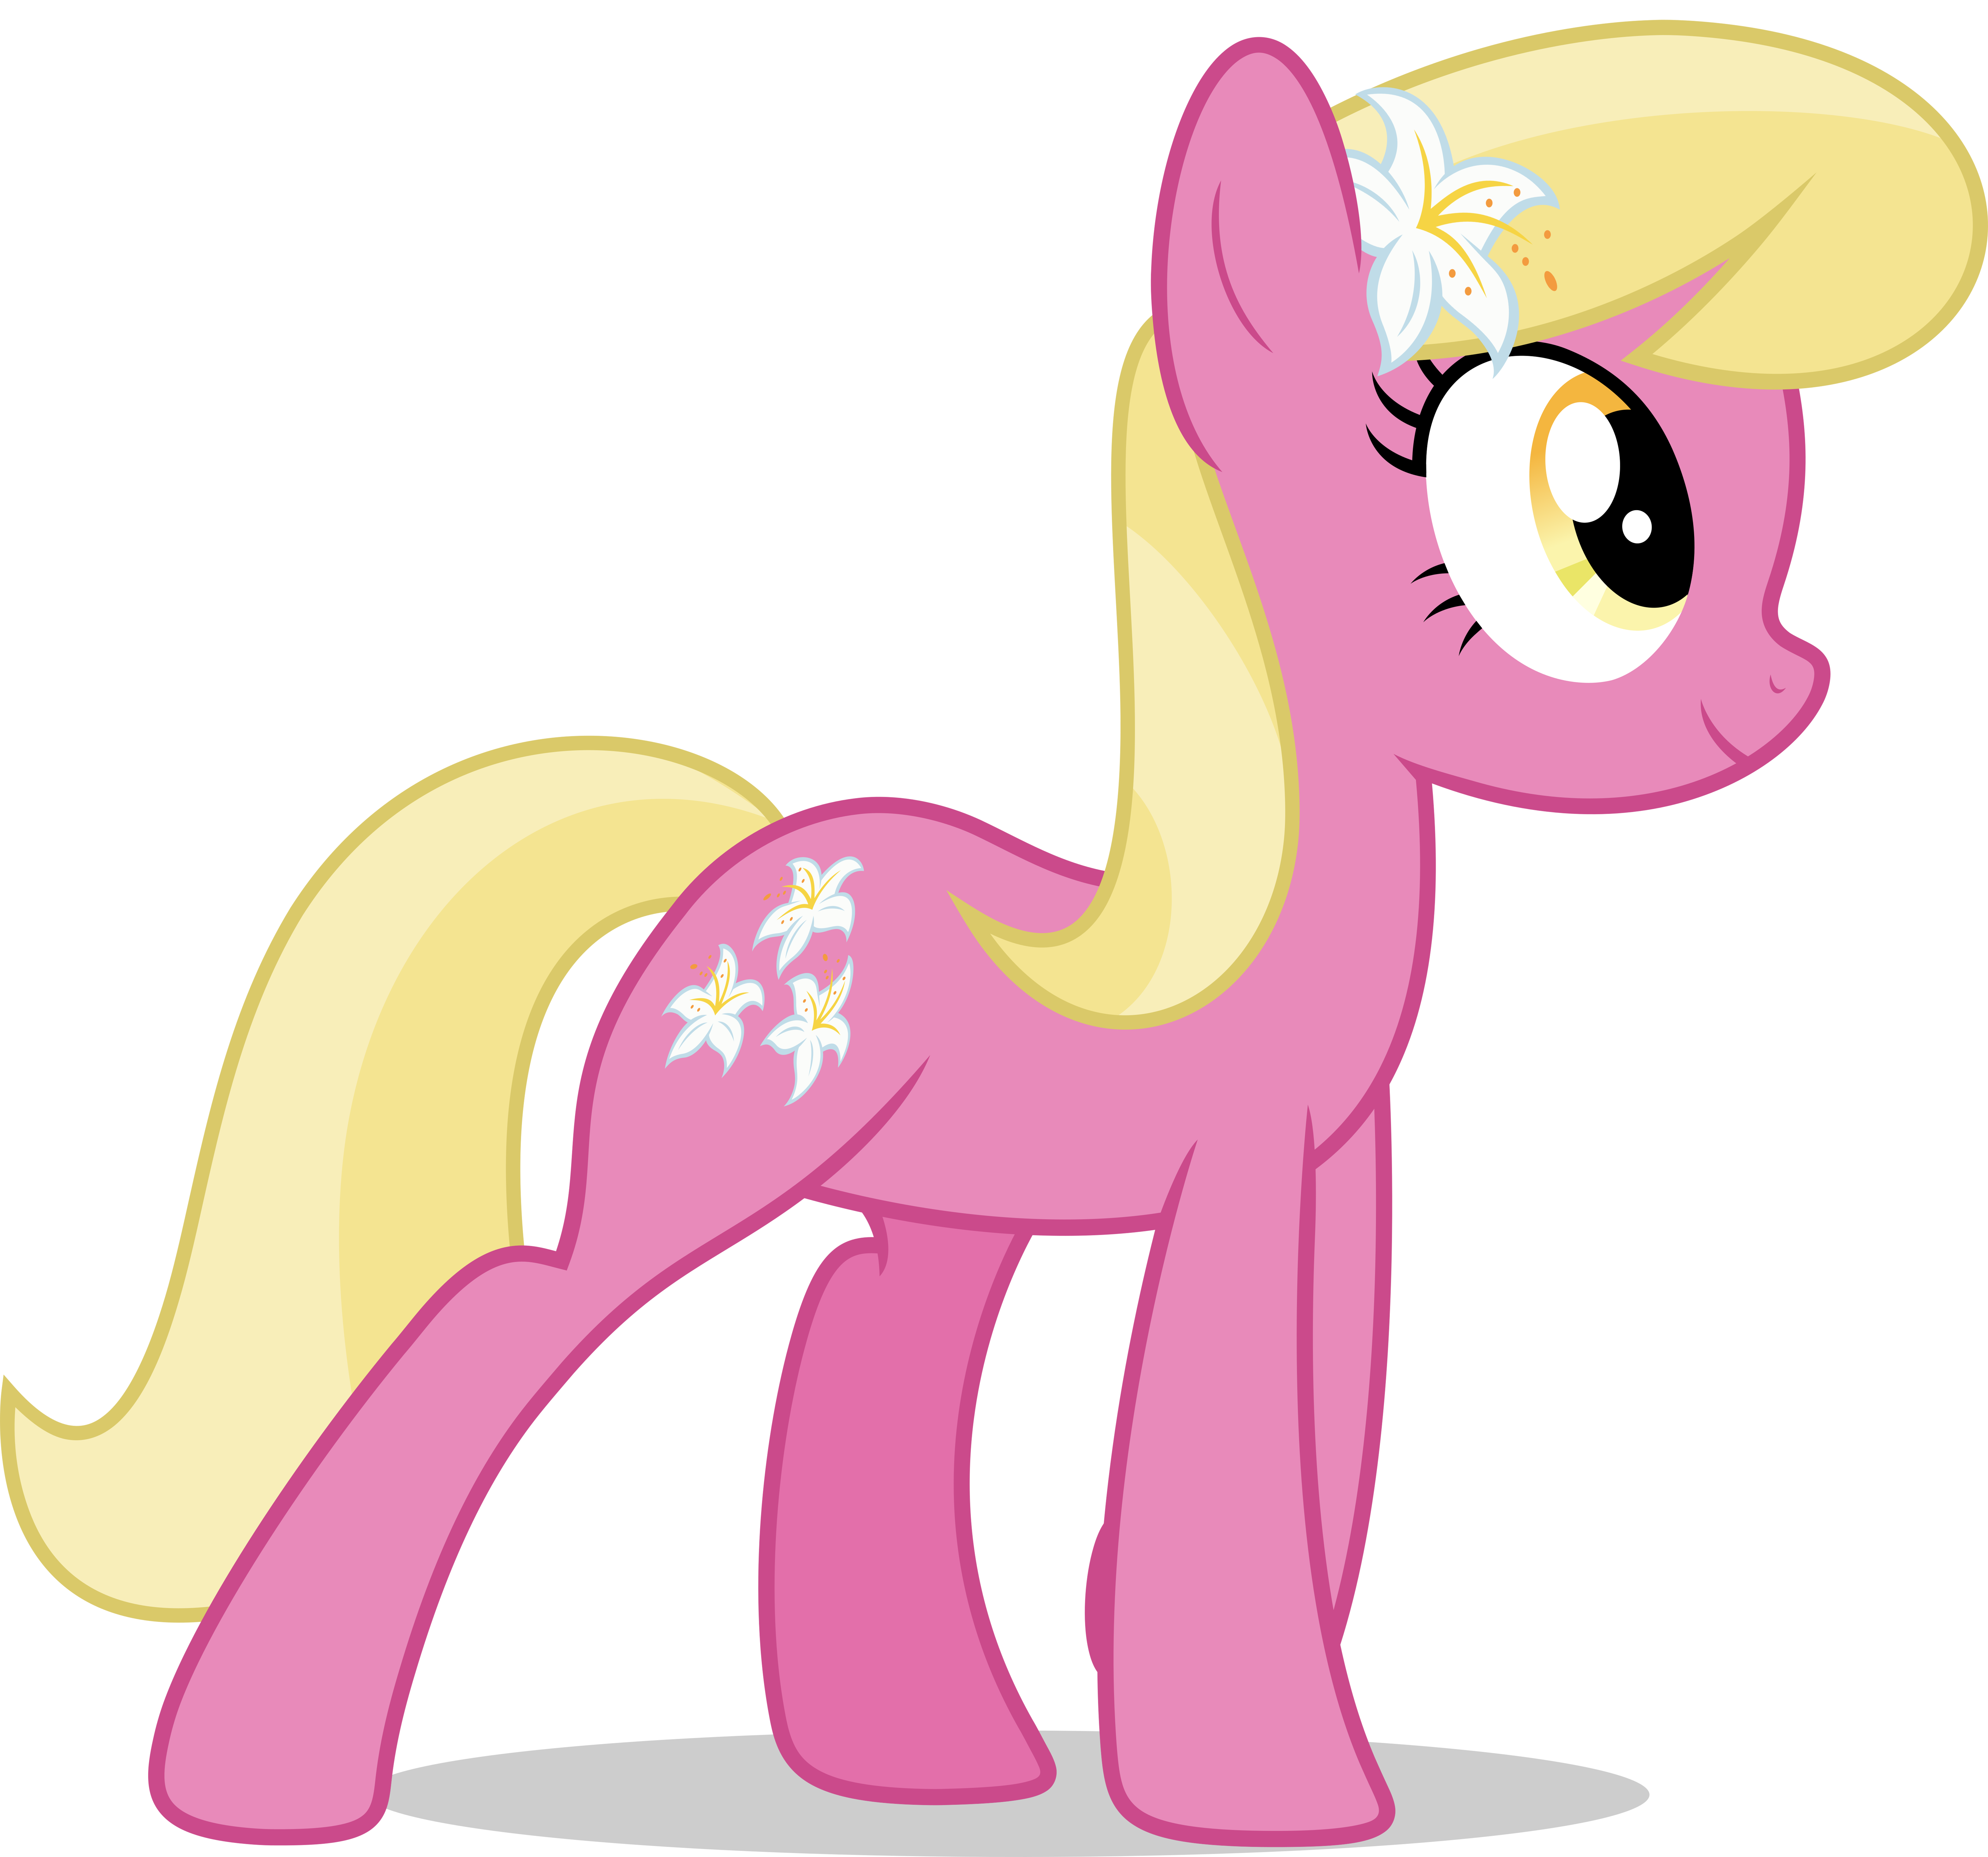 Mlp Fim Lily Valley (happy) Vector By Luckreza8 On DeviantArt